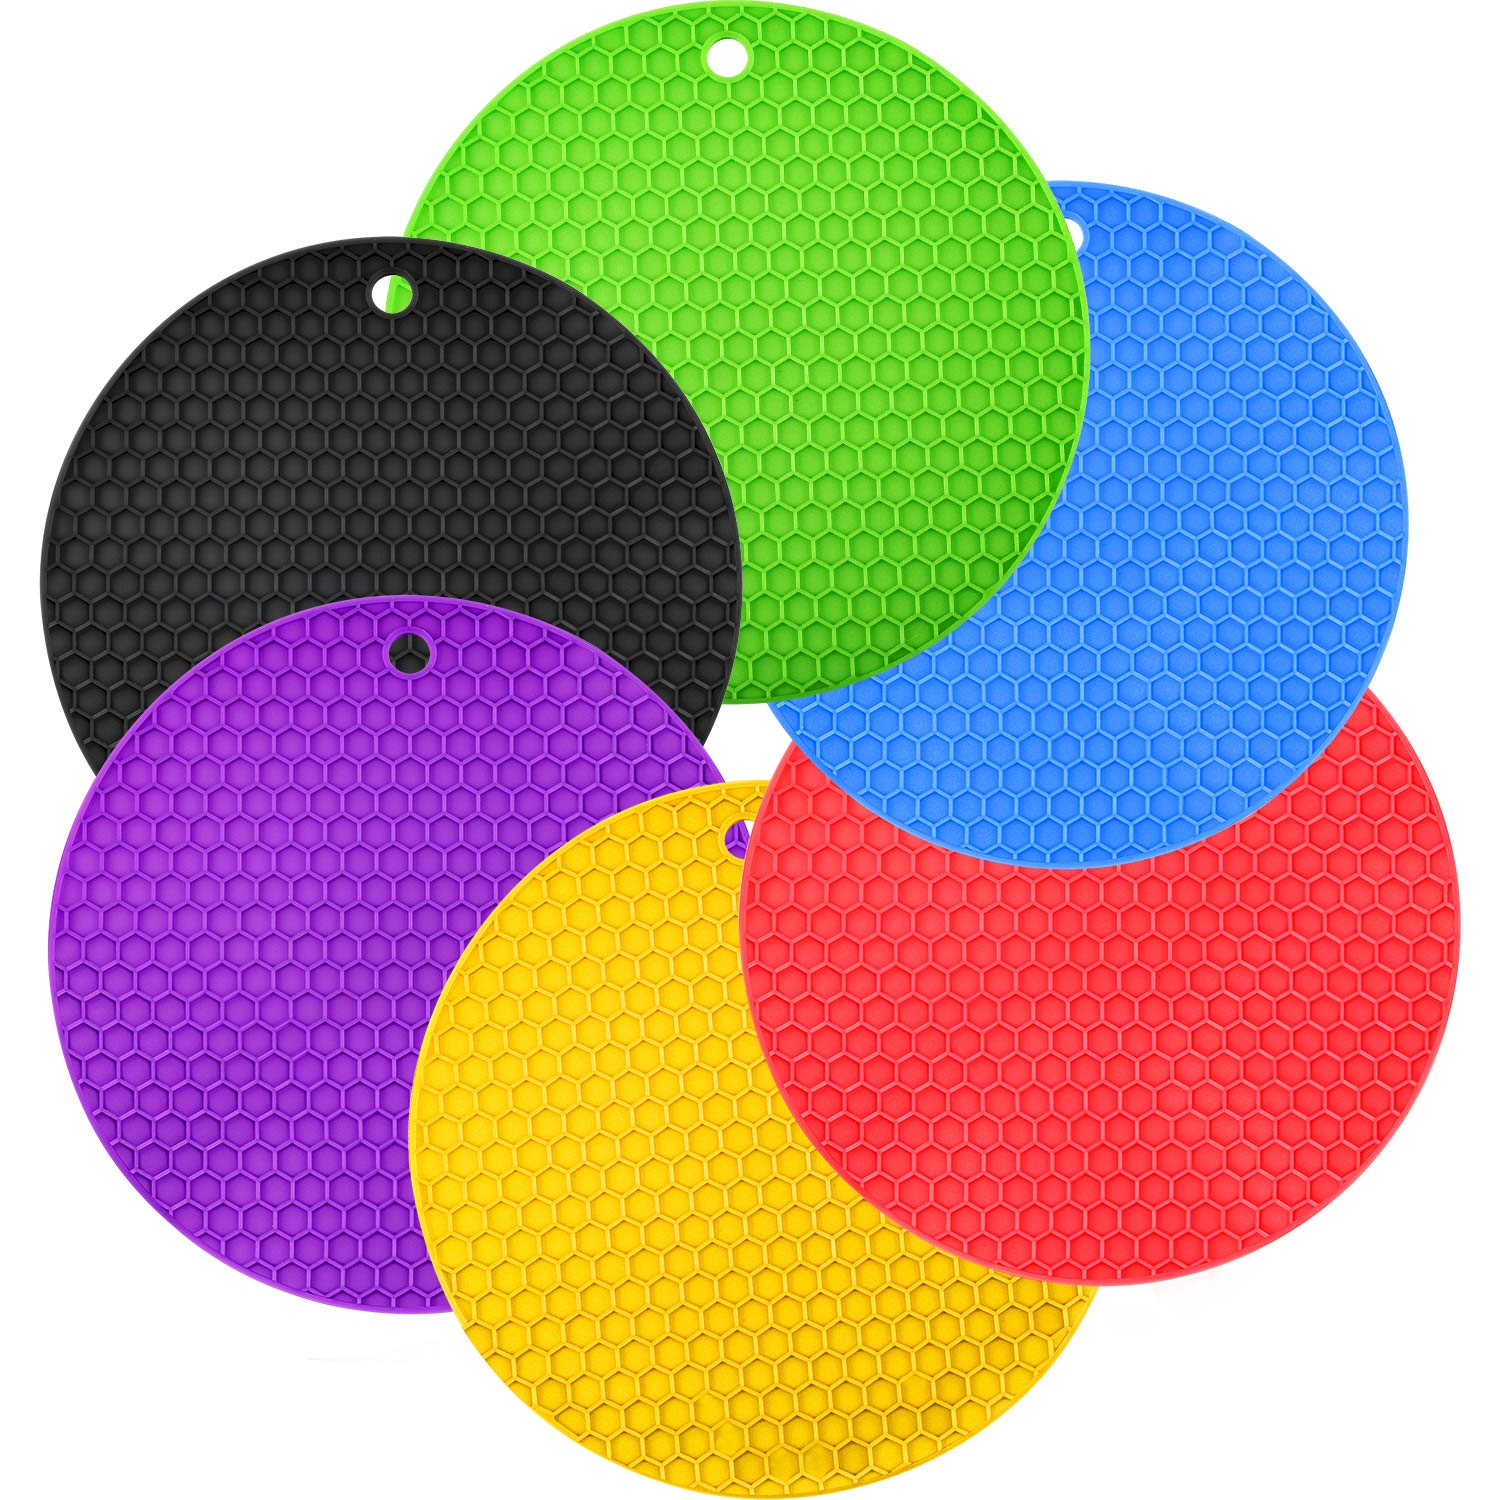 Boao 6 Pieces Silicone Trivets Mat, Hot Pad Mat, Round Pot Holder, Spoon Rests and Jar Gripper Pads, 7 x 7 Inches